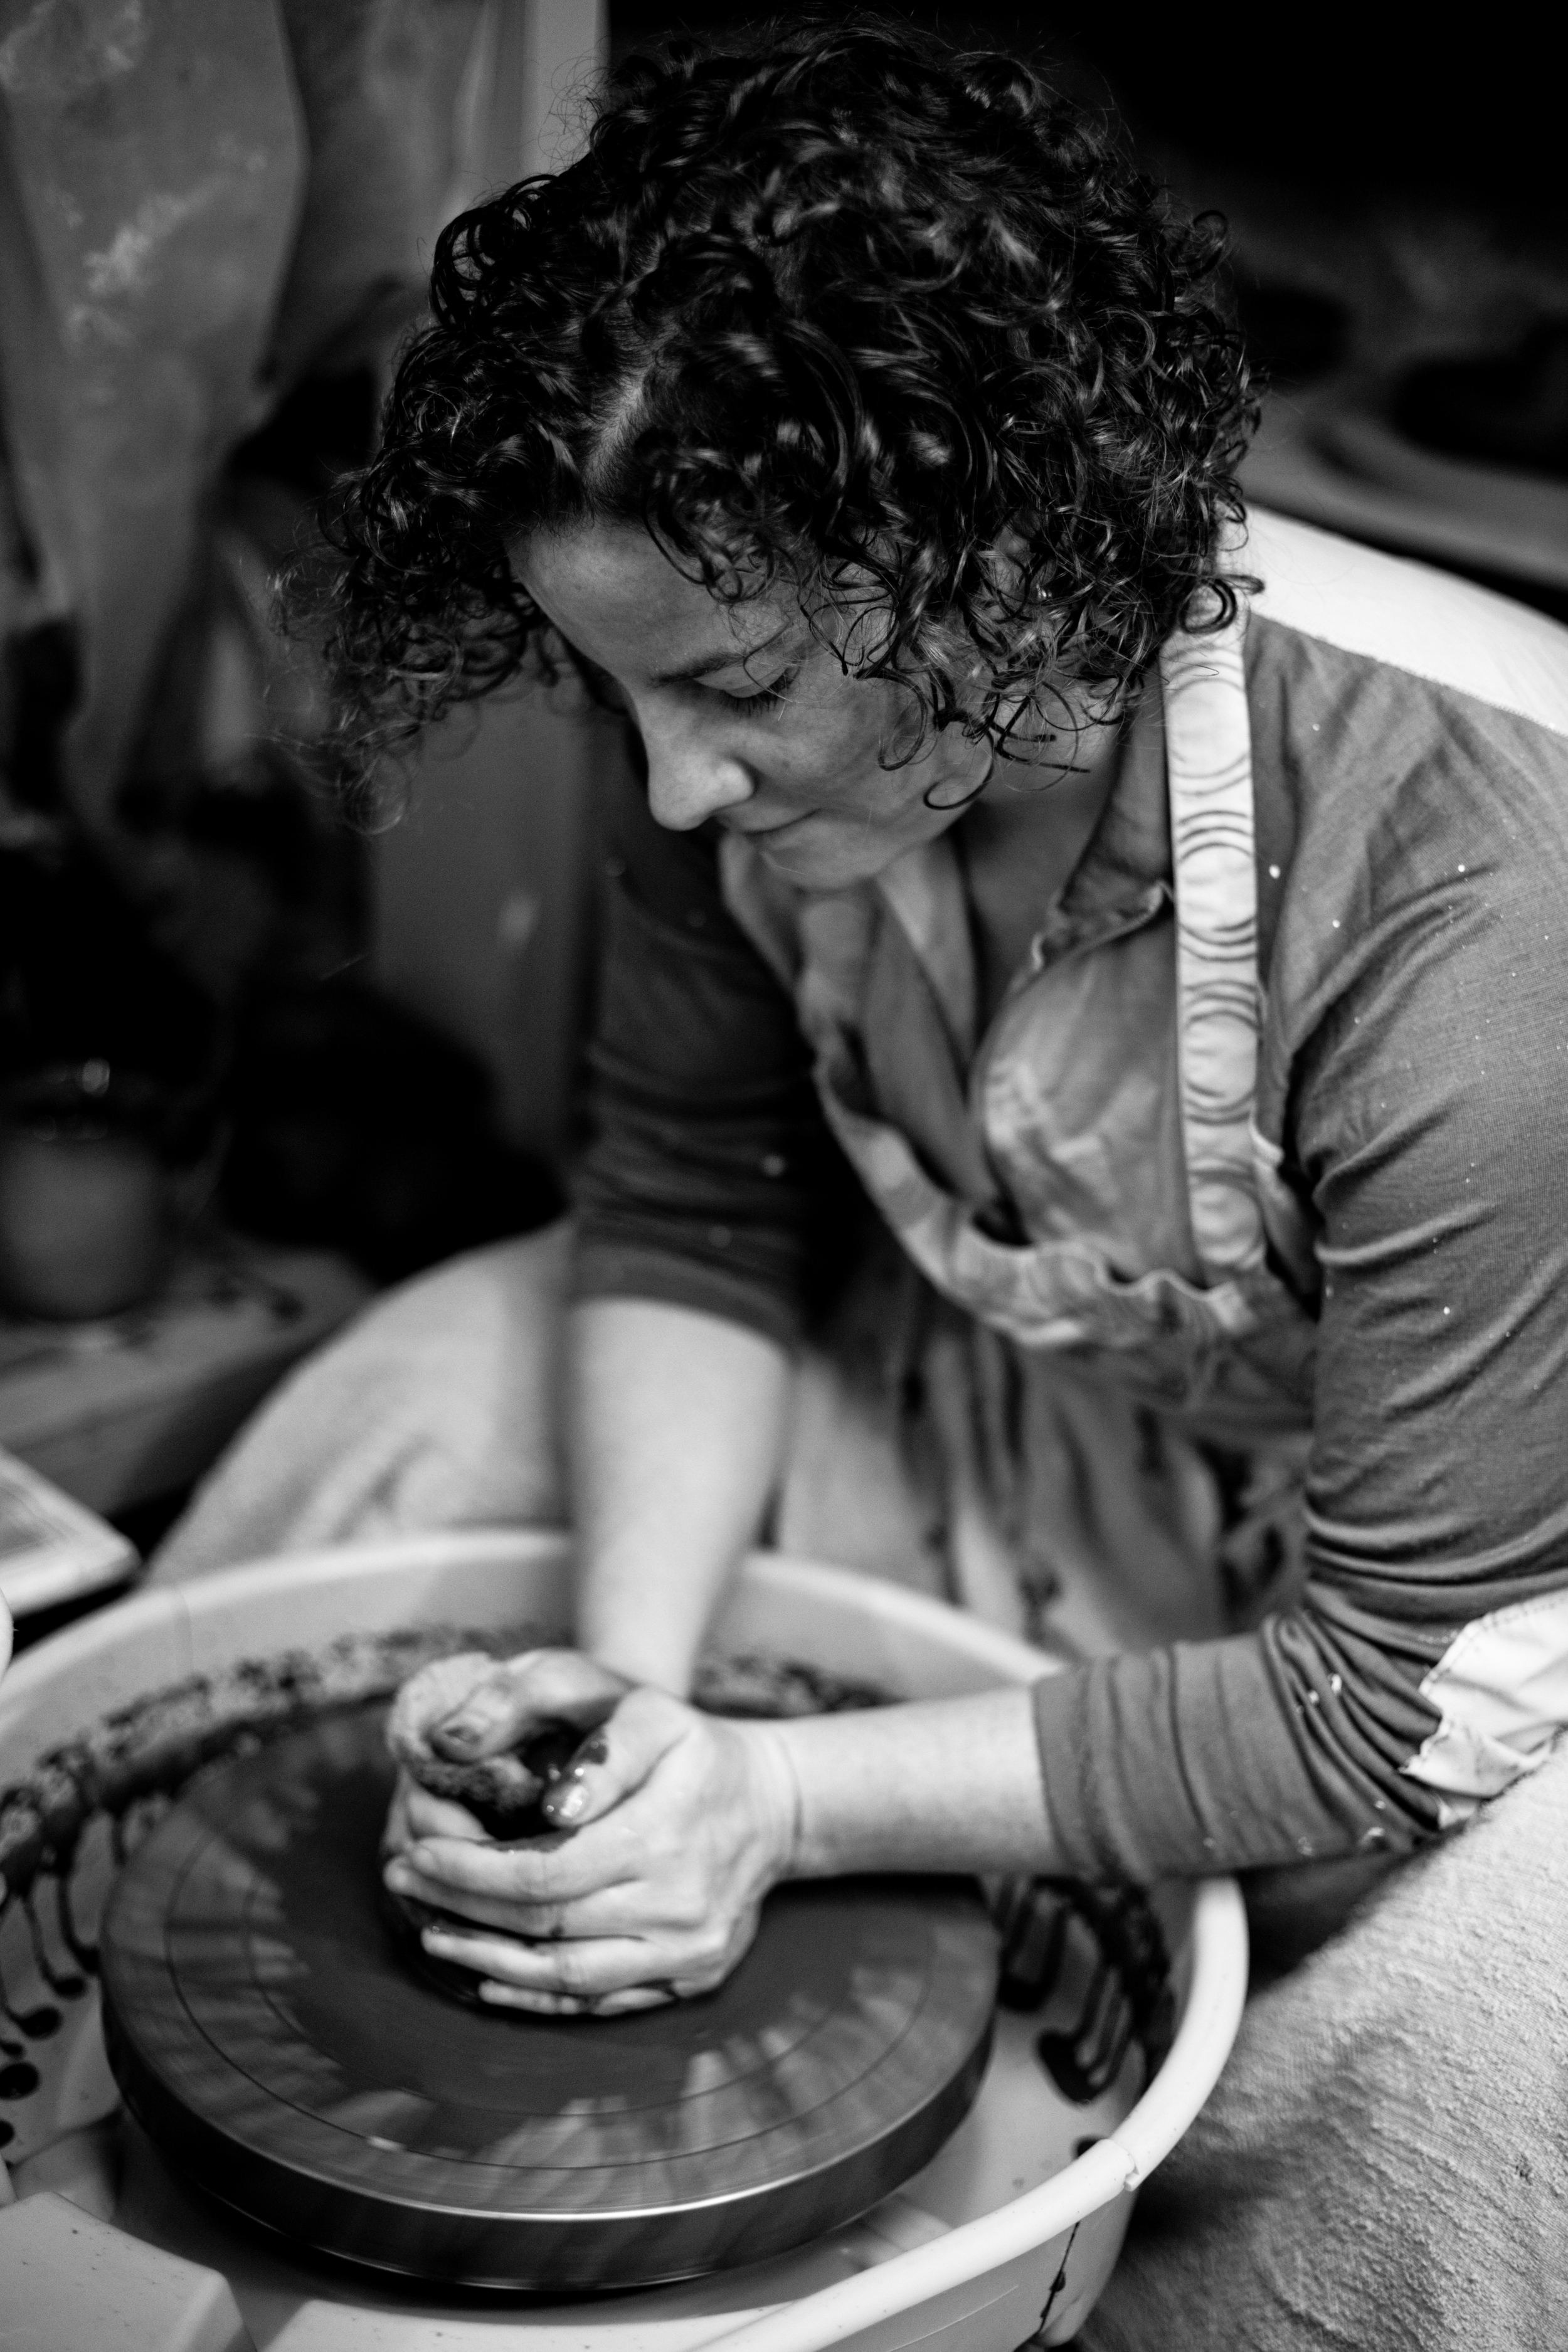 Come and try your hand at throwing pottery on the wheel. You will received personalized support to help you grow in your competency as a pottery. Plus you'll have a lot of fun and meet great new people.